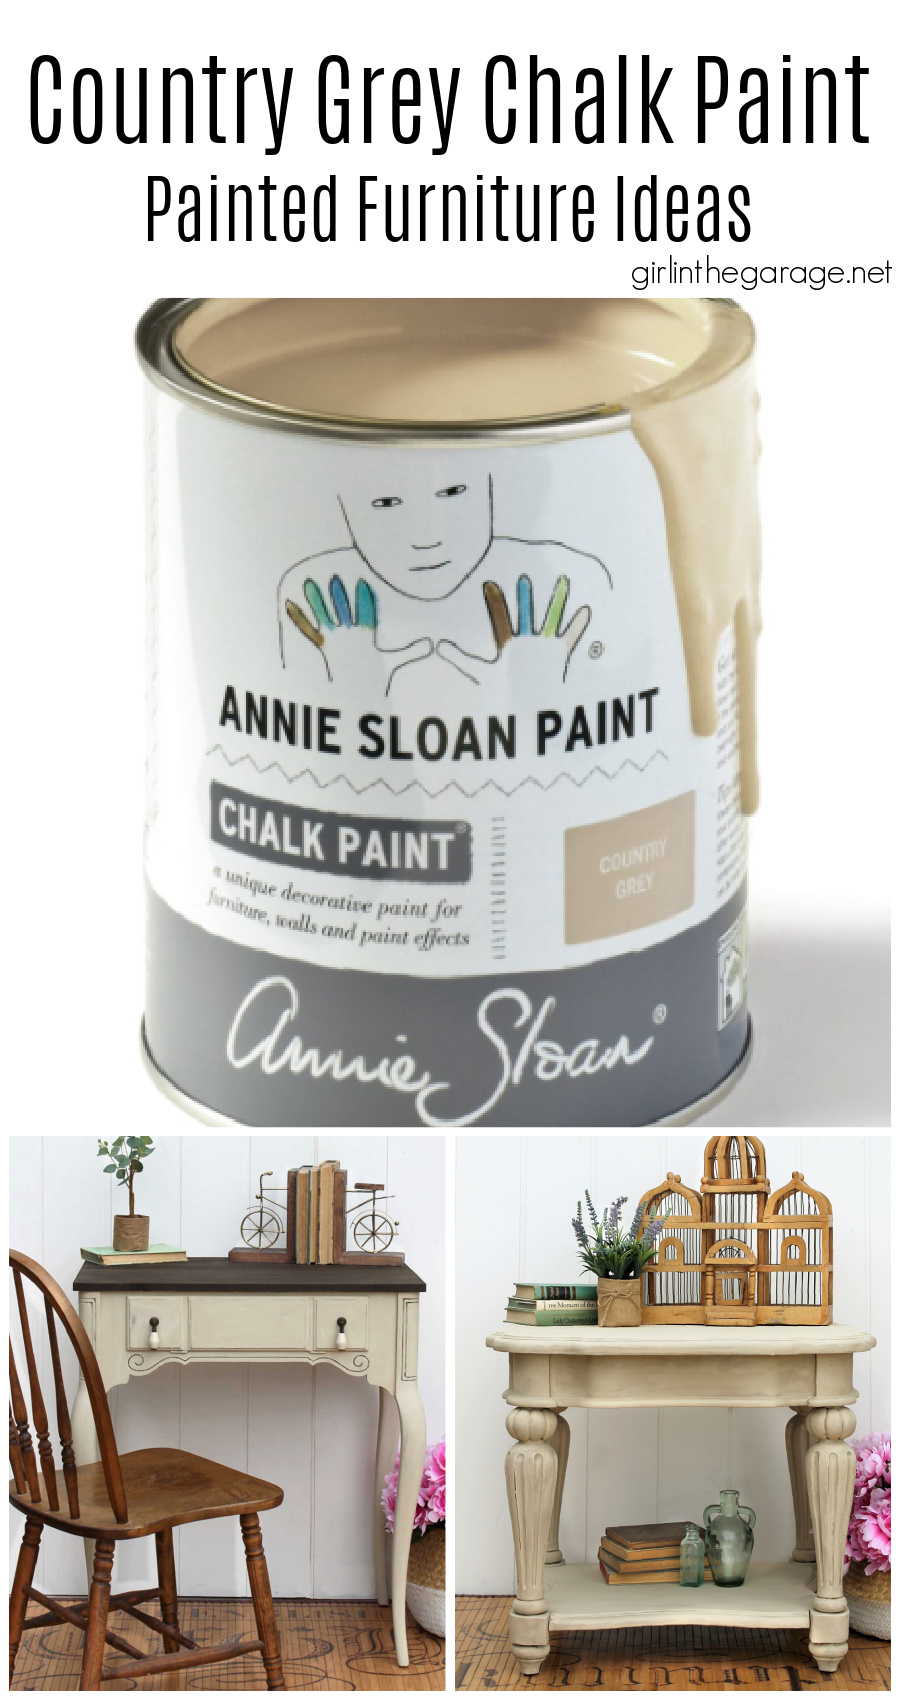 Country Grey Chalk Paint - Painted Furniture Ideas by Girl in the Garage